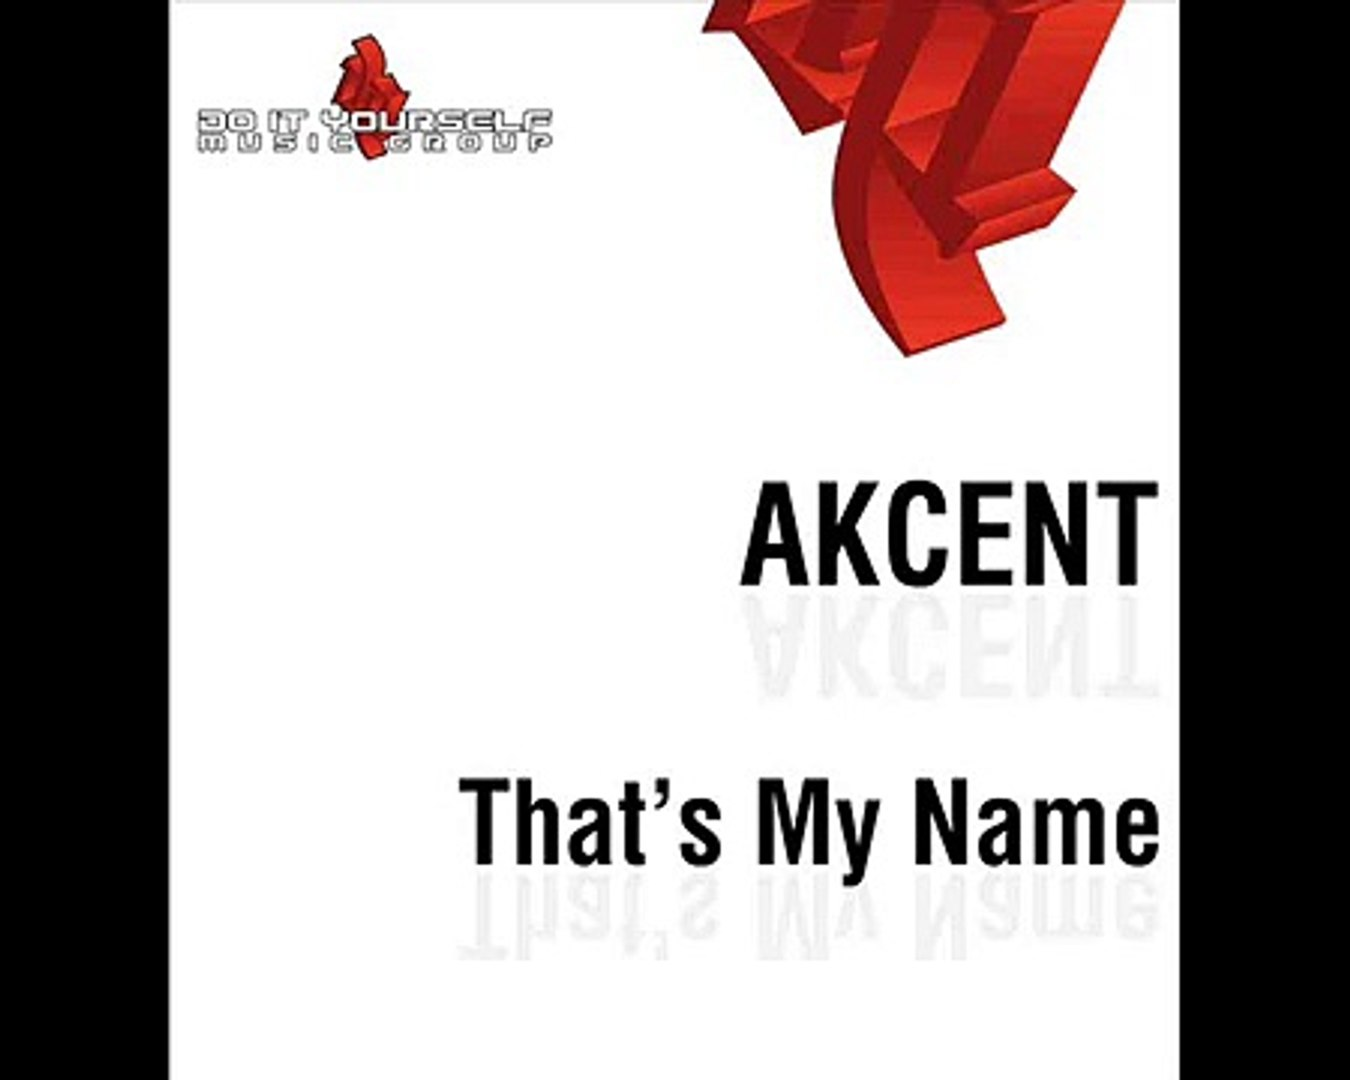 download thats my name akcent